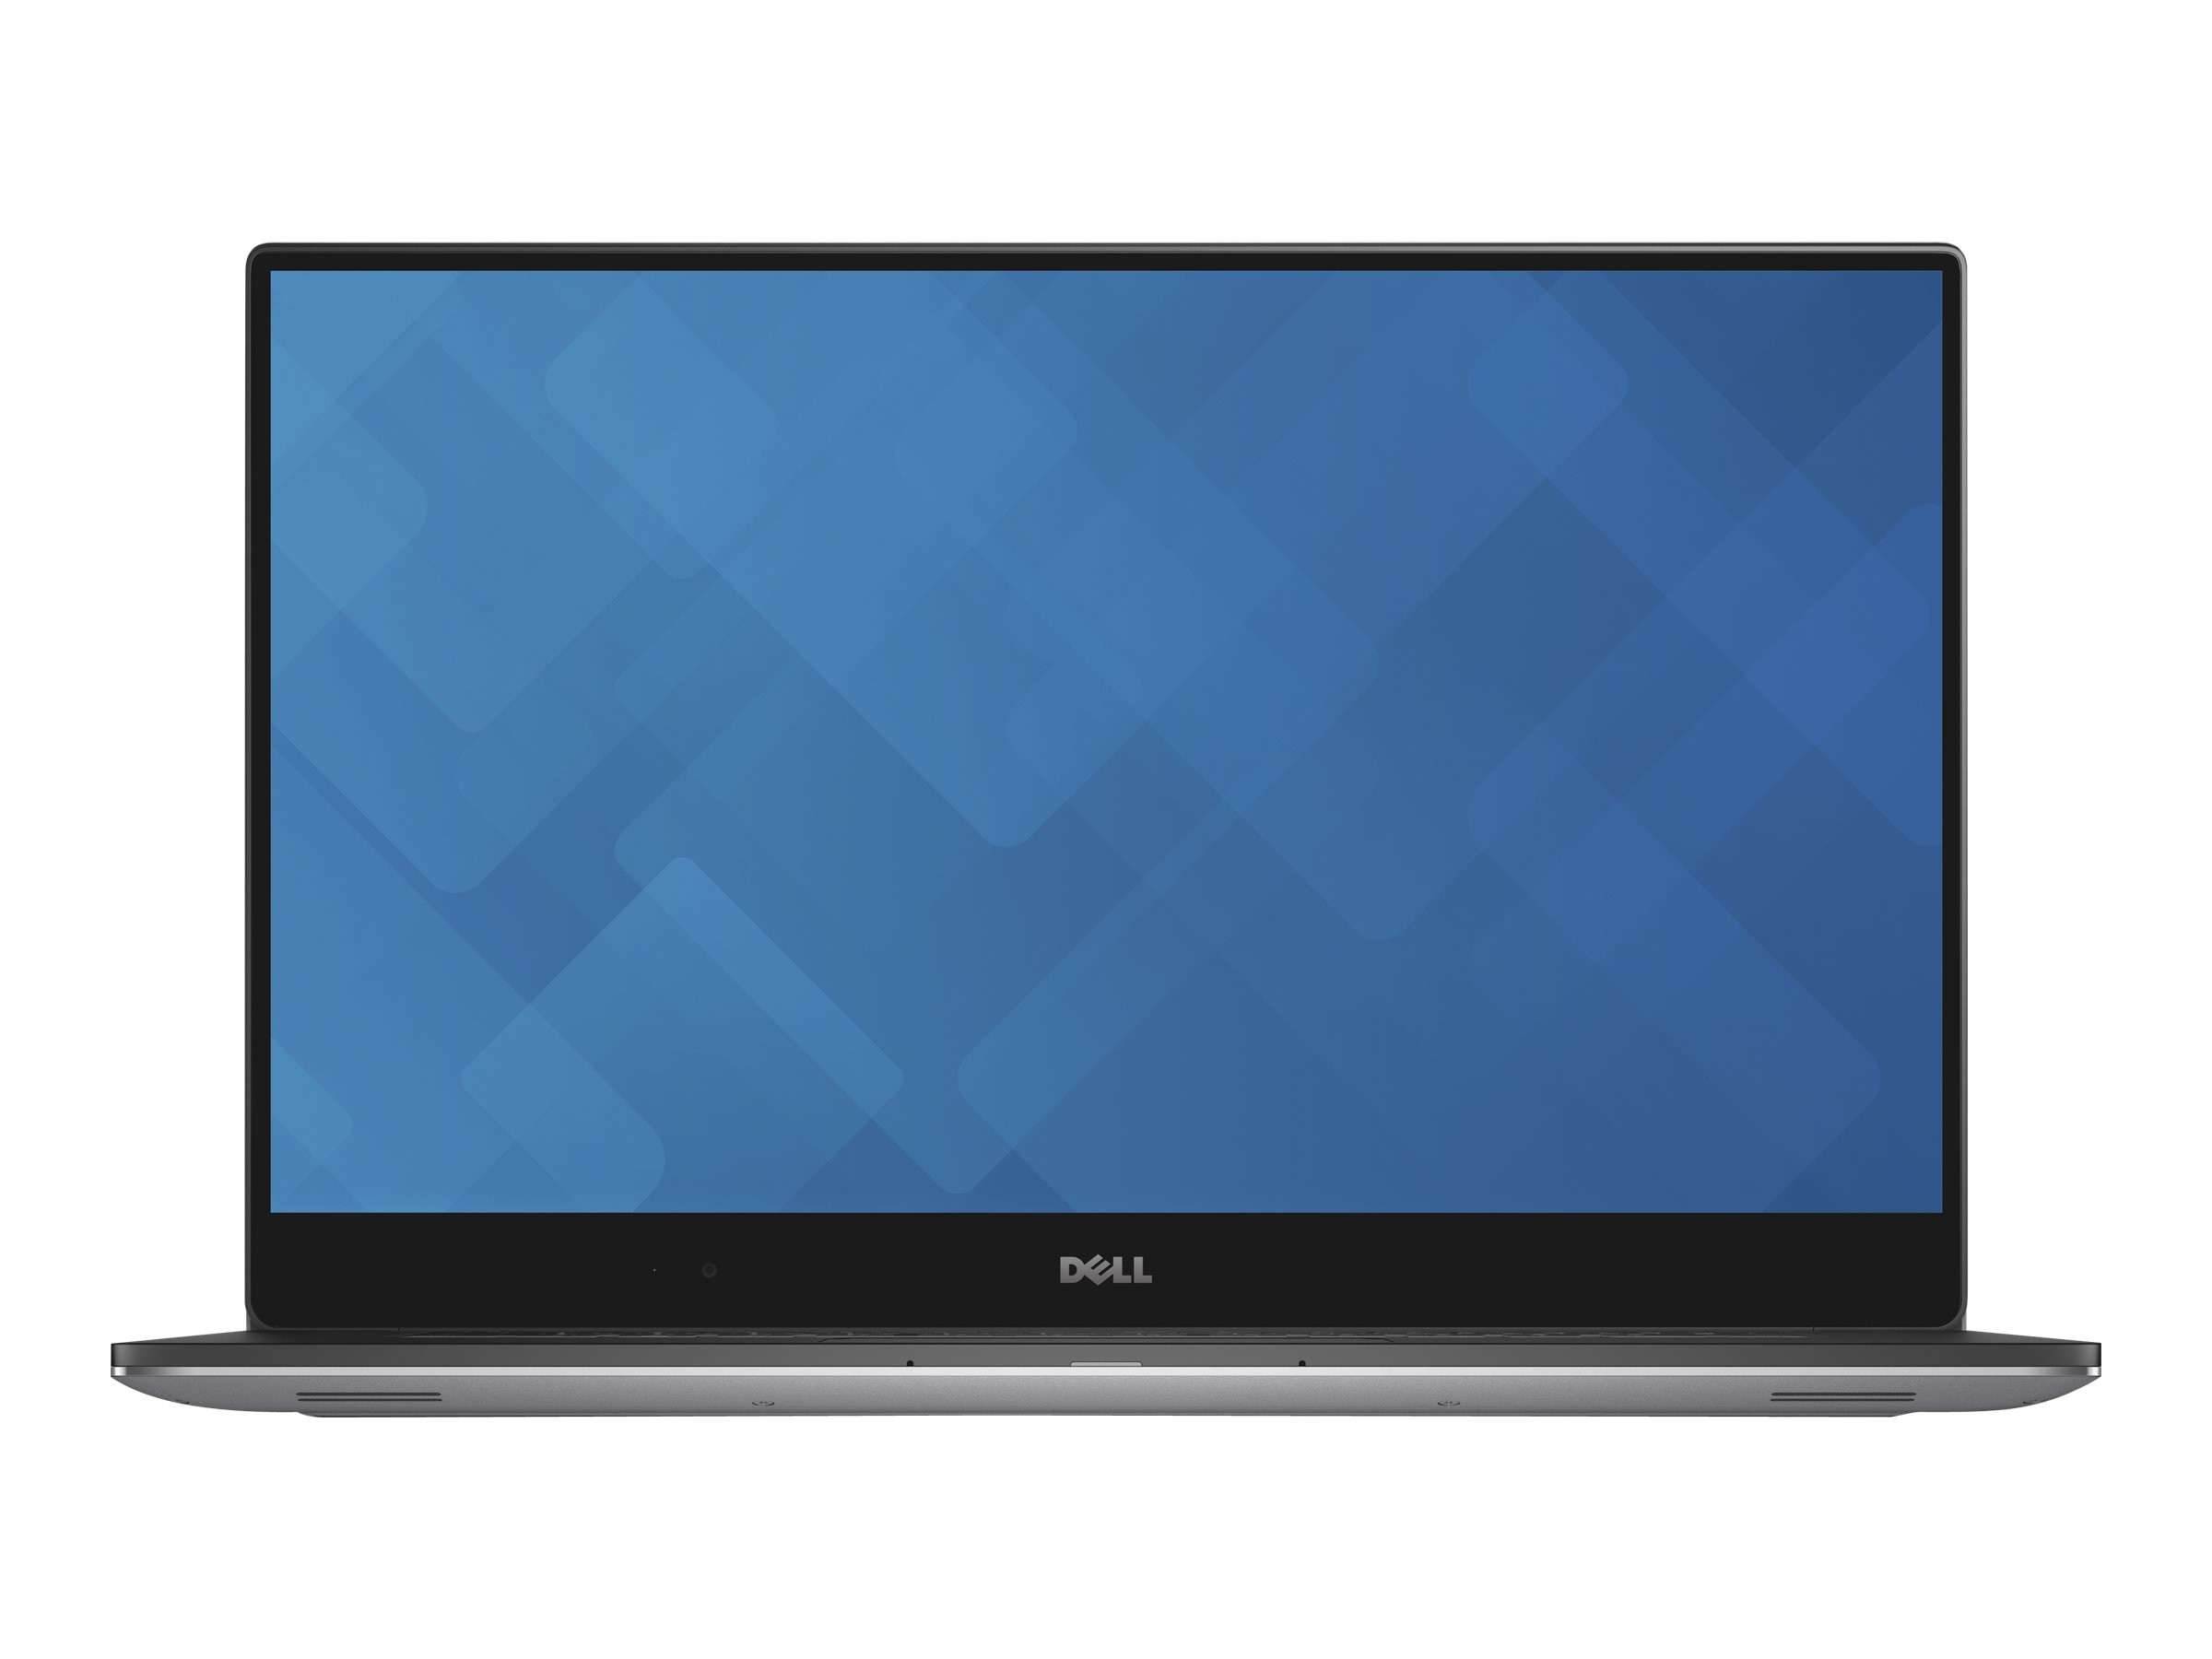 Dell Precision 5510 Core i7-6820HQ 2.7GHz 8GB 512GB PCIe SSD M1000M ac BT WC 3C W7P64-W10P, MGGH3